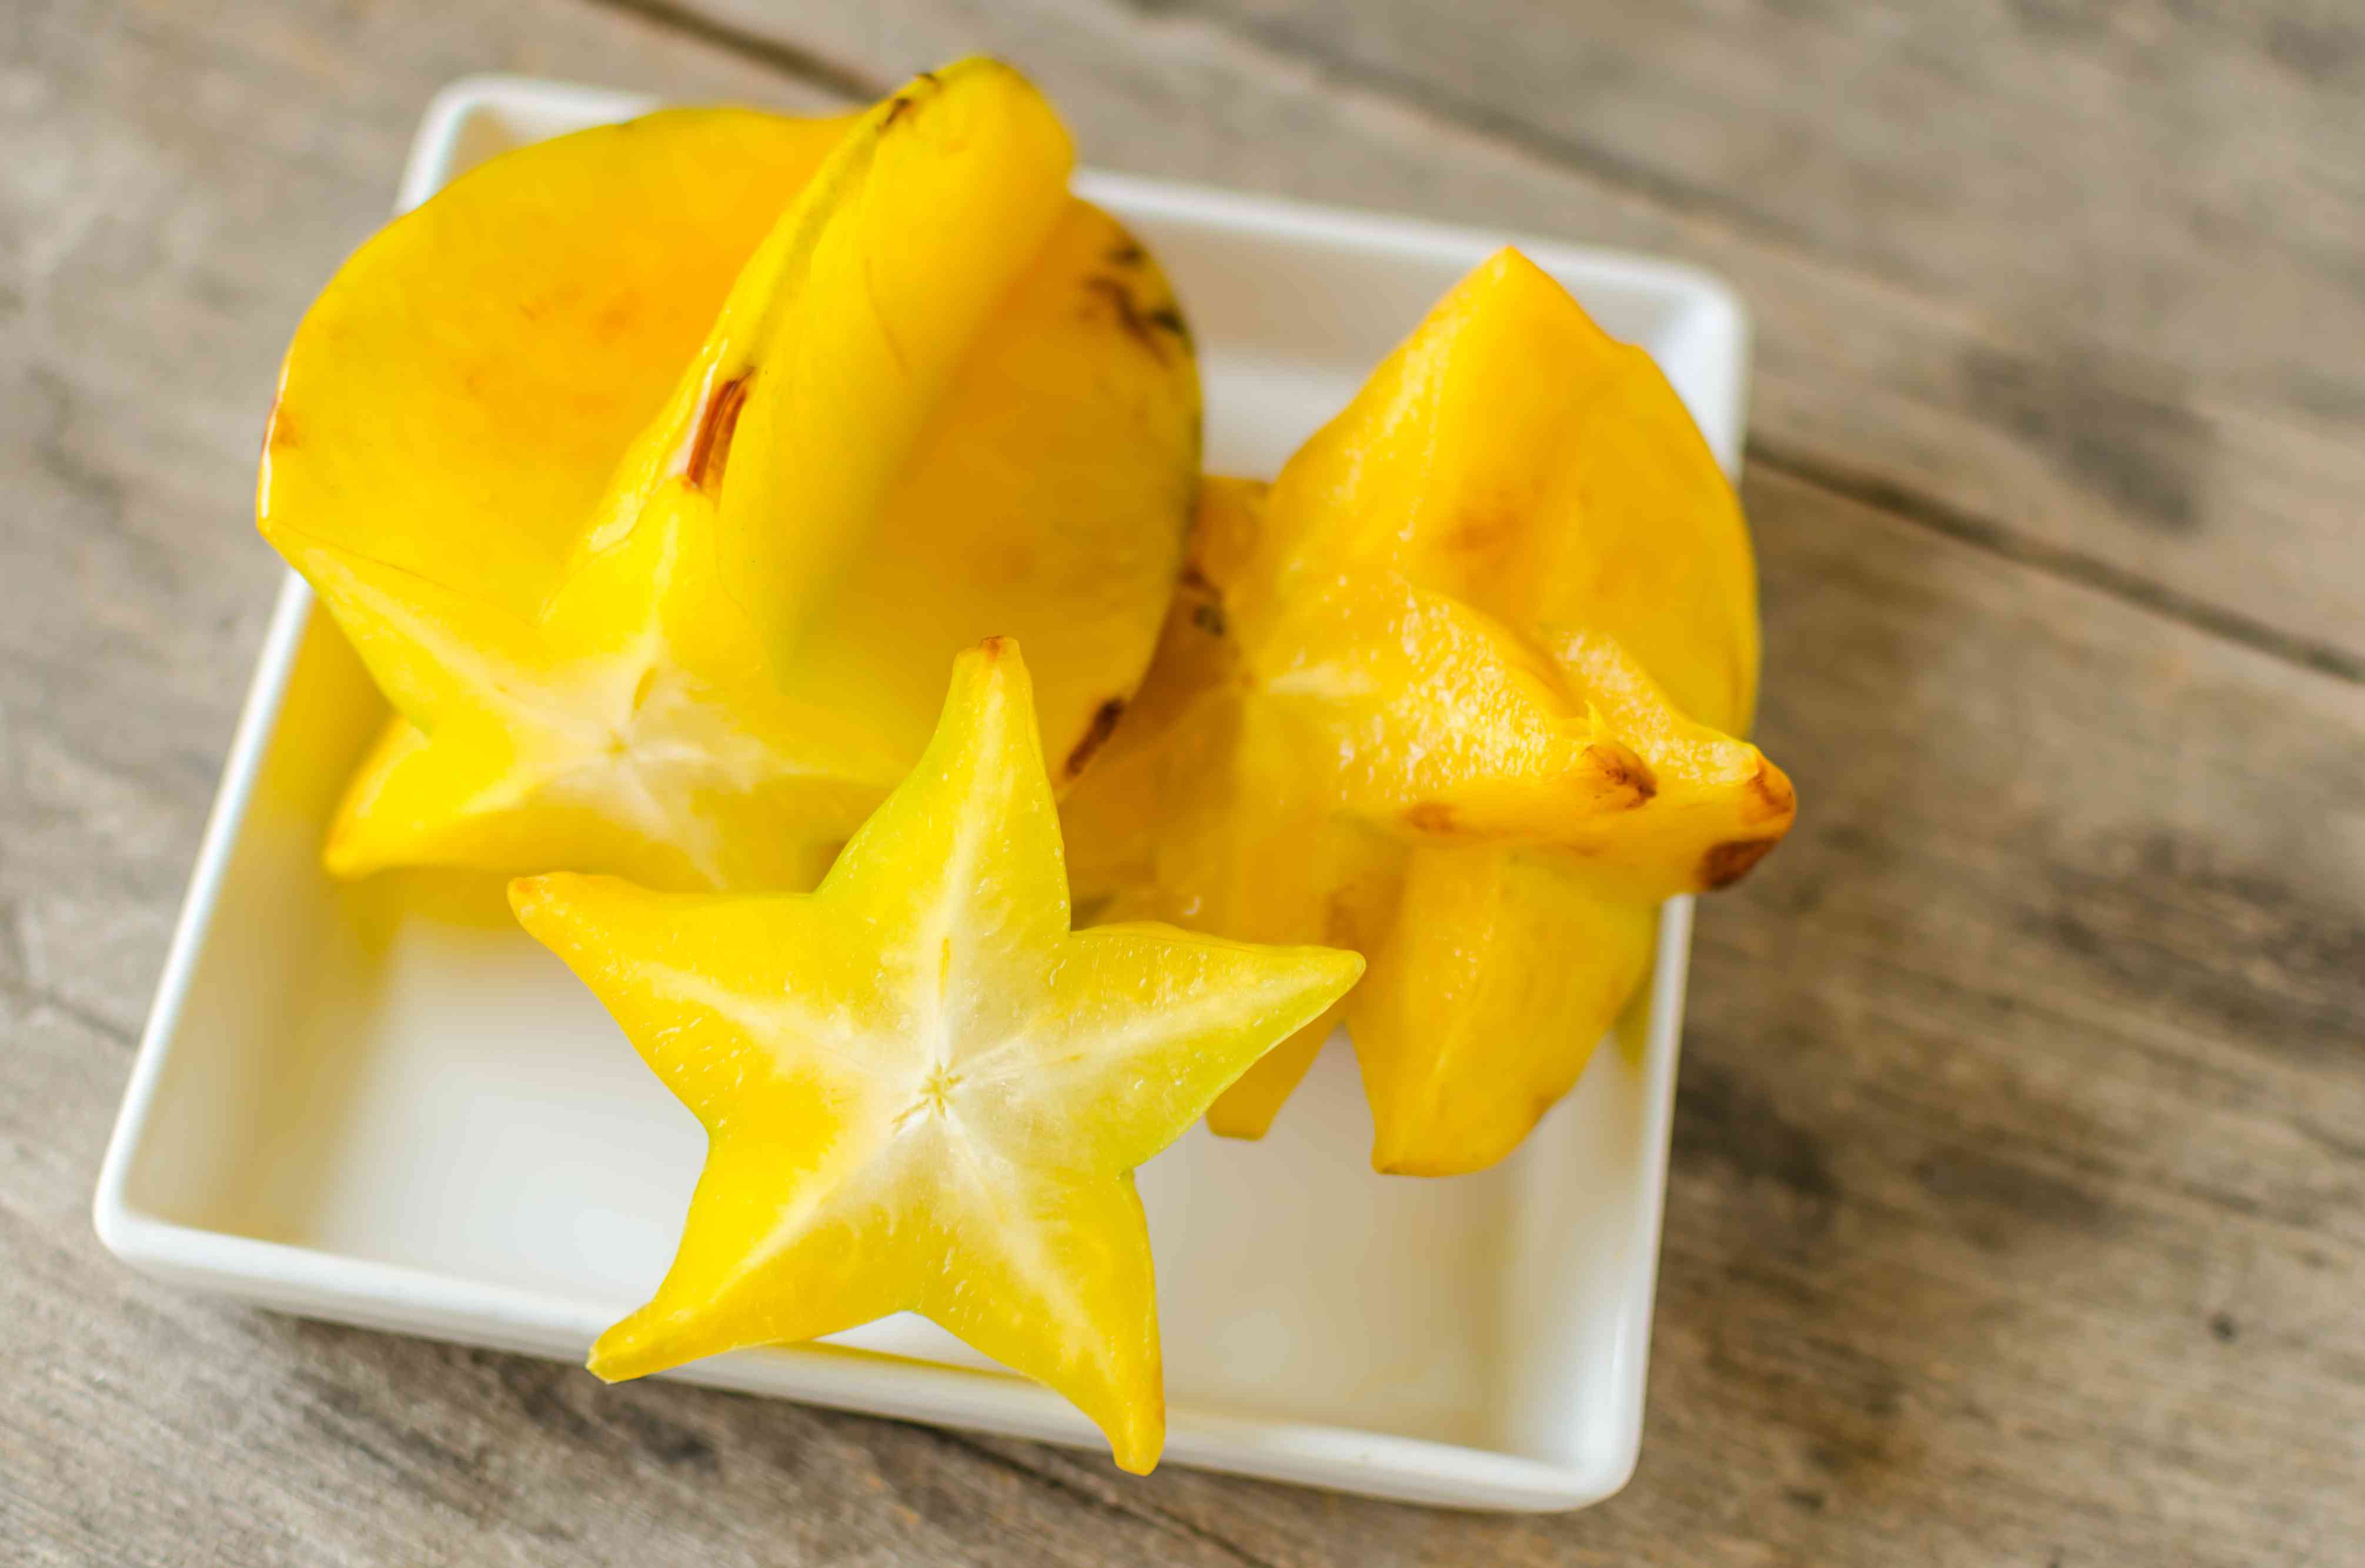 Close-Up Of Starfruit In Bowl On Table